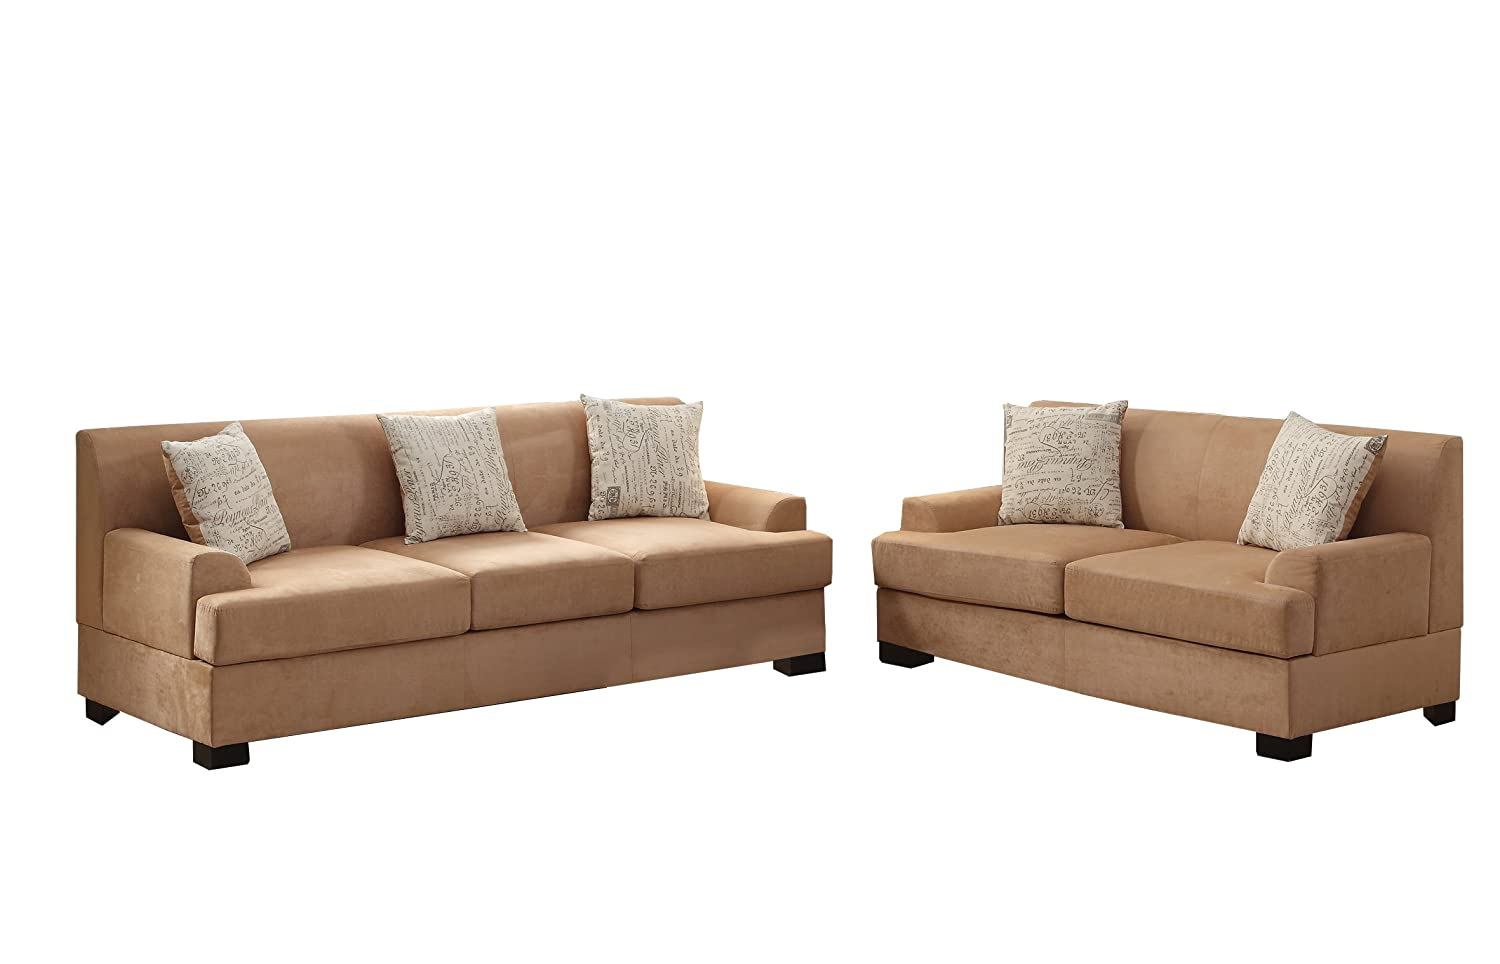 Poundex Bobkona Barrie Microsuede 2 Piece Sofa and Loveseat Set - Tan